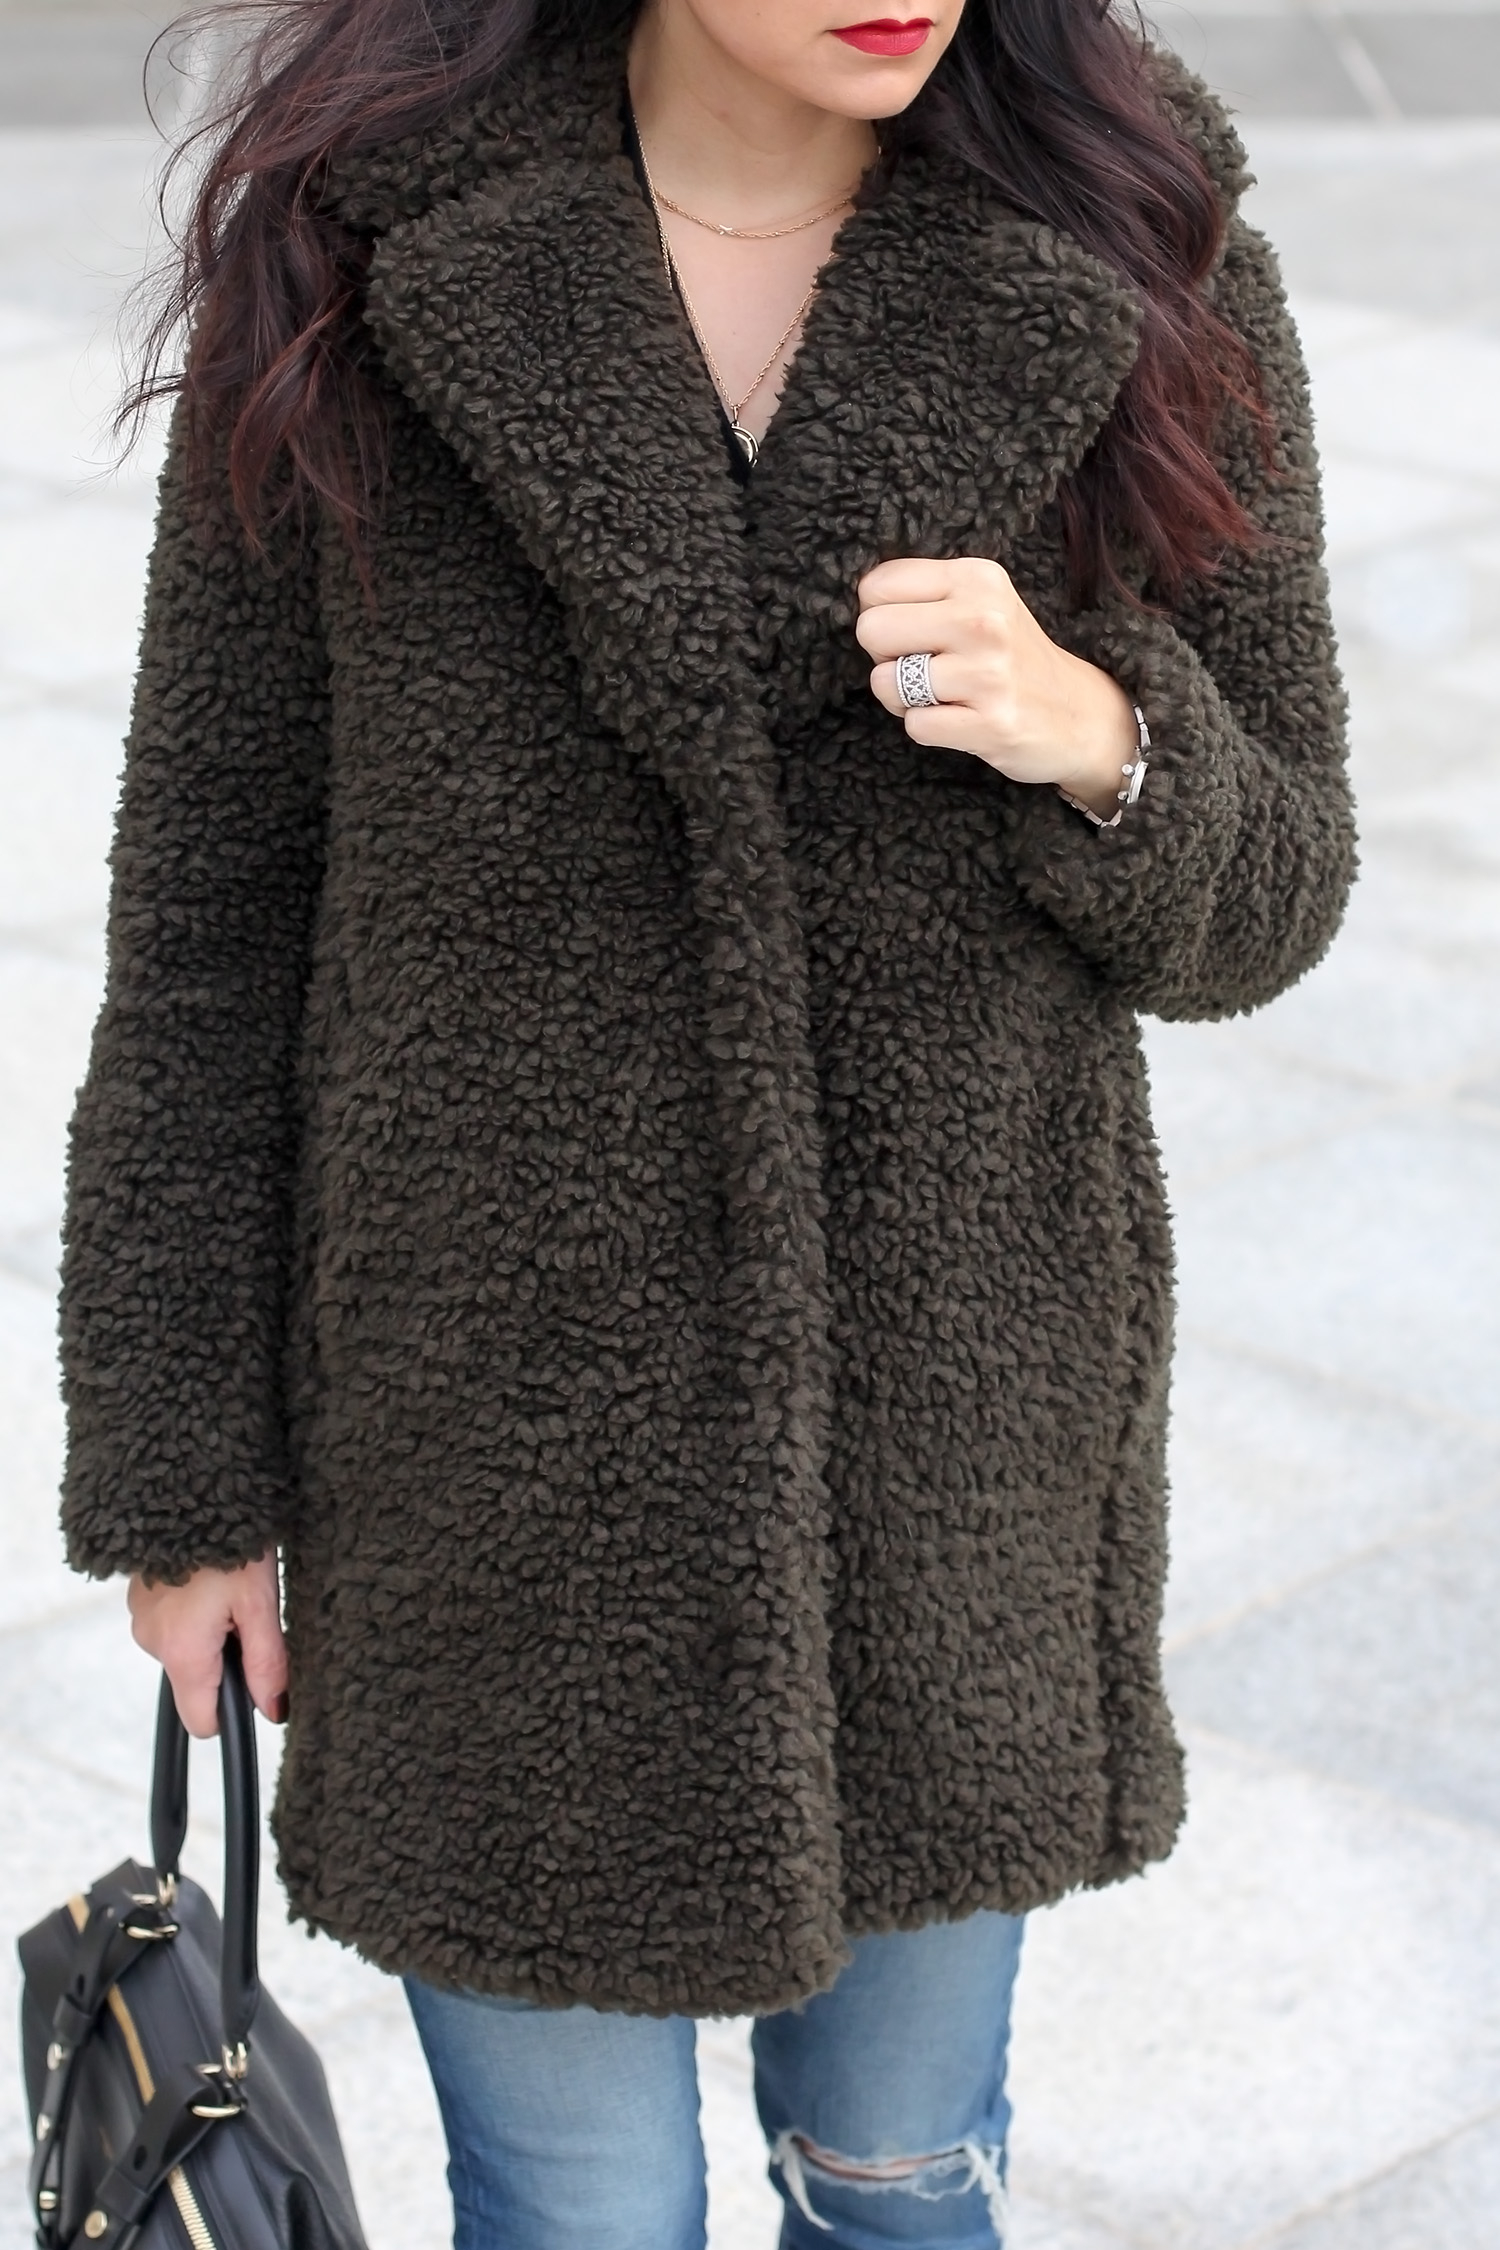 Teddy Coat, Winter Style, Suede Boots, Distressed Jeans